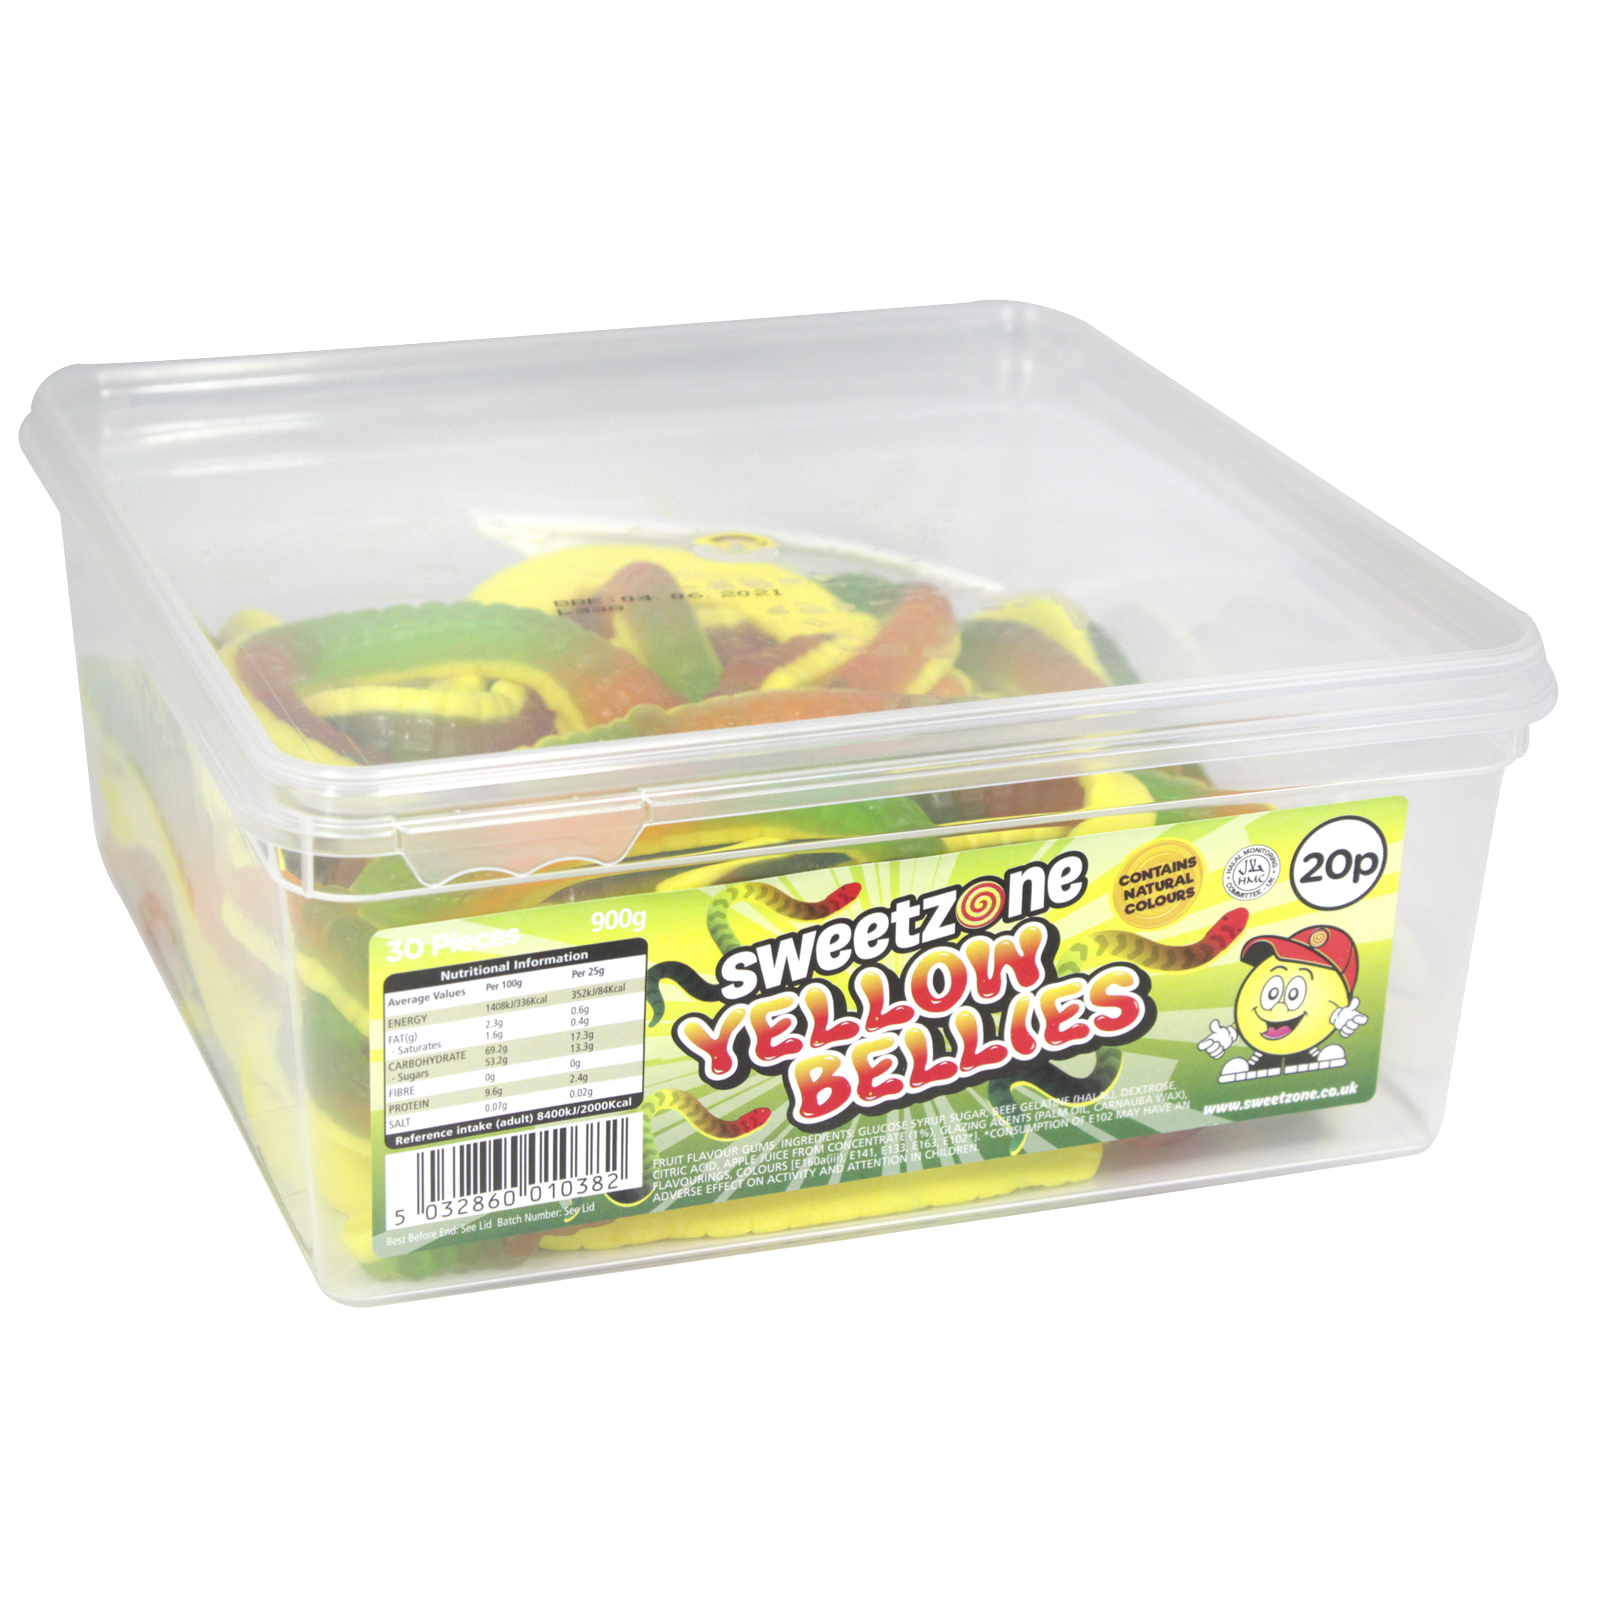 SWEETZONE GIANT YELLOW BELLIES TUB 30 PIECES X 20P